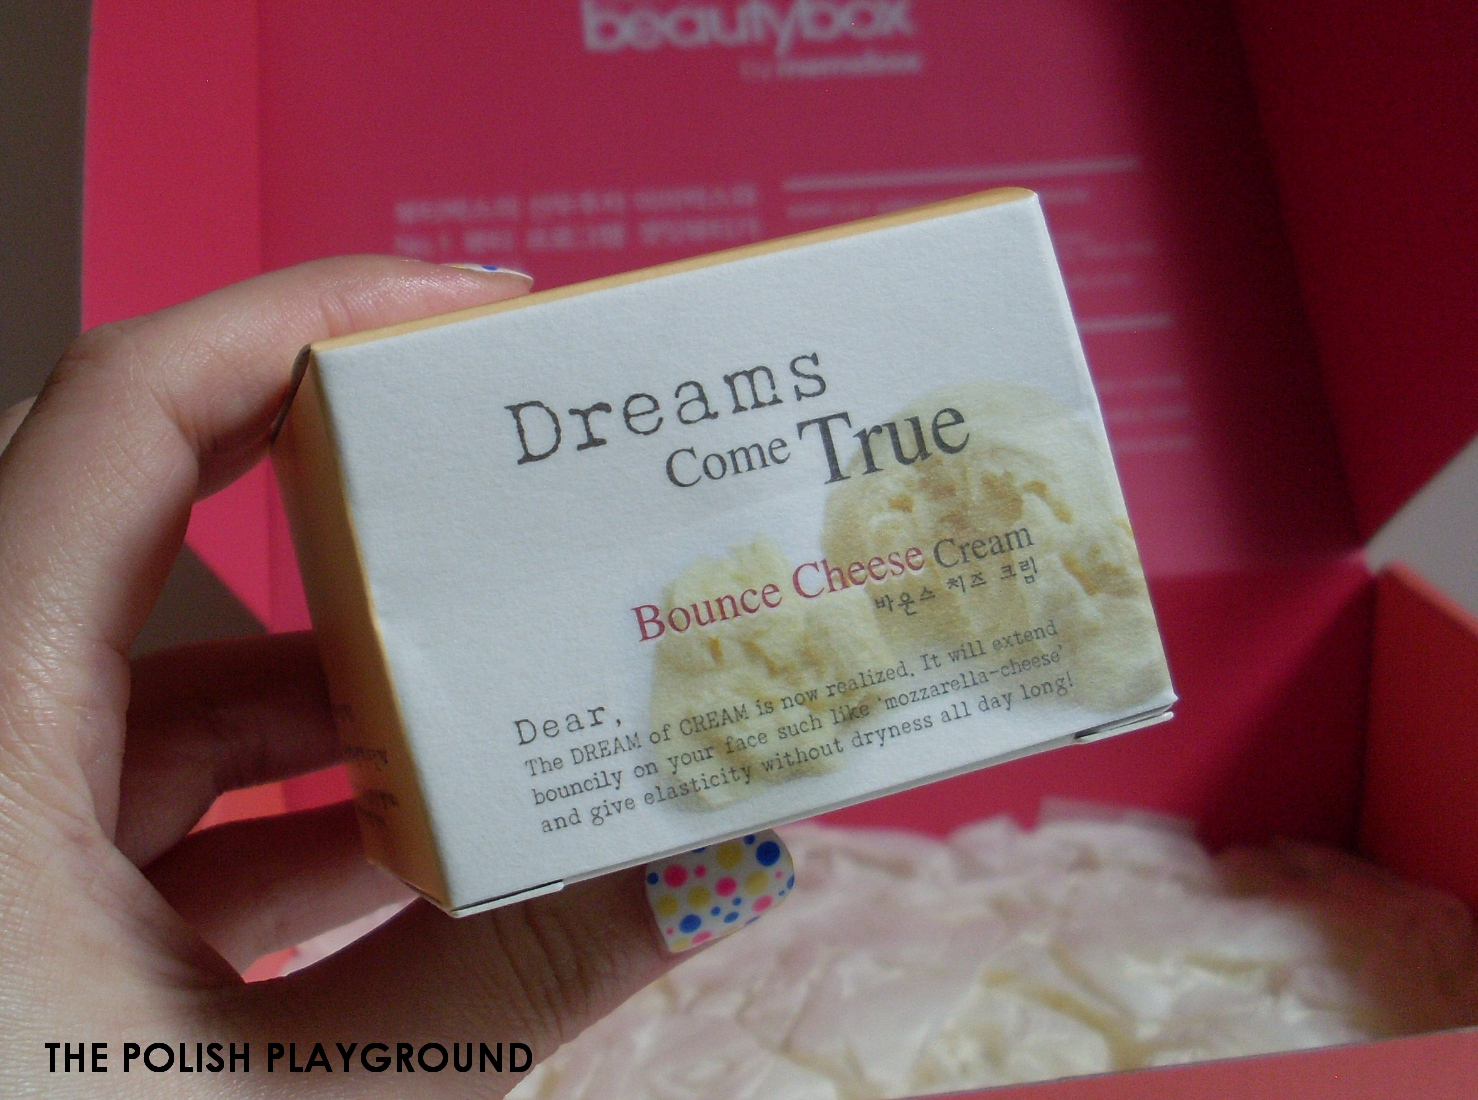 Memebox Luckybox #1 Unboxing and First Impressions - Dear by Enprani Bounce Cheese Cream